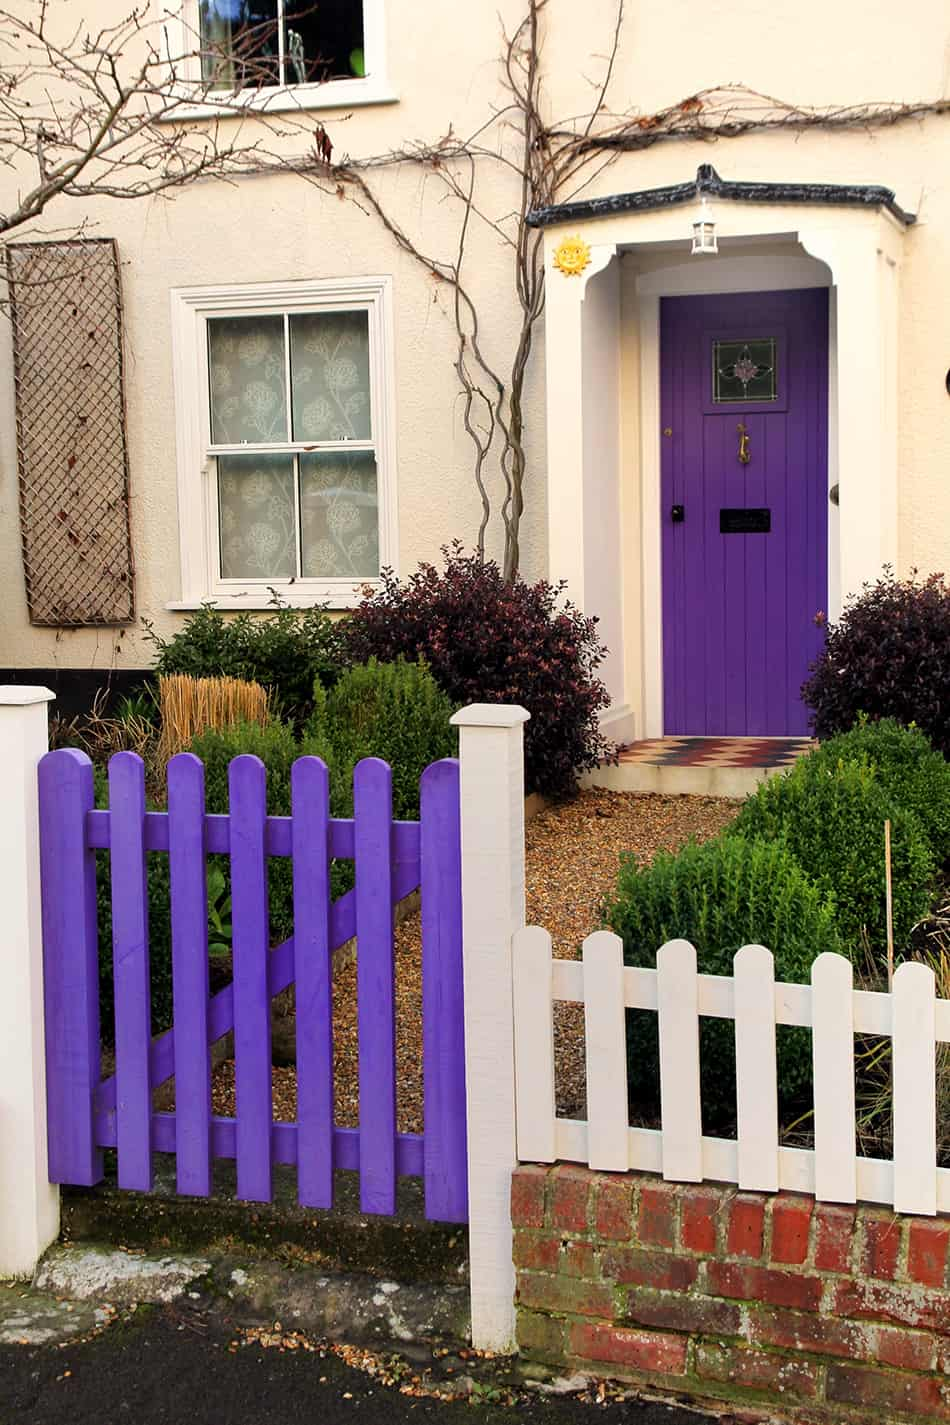 Make Your Entry Inviting with a Purple Gate